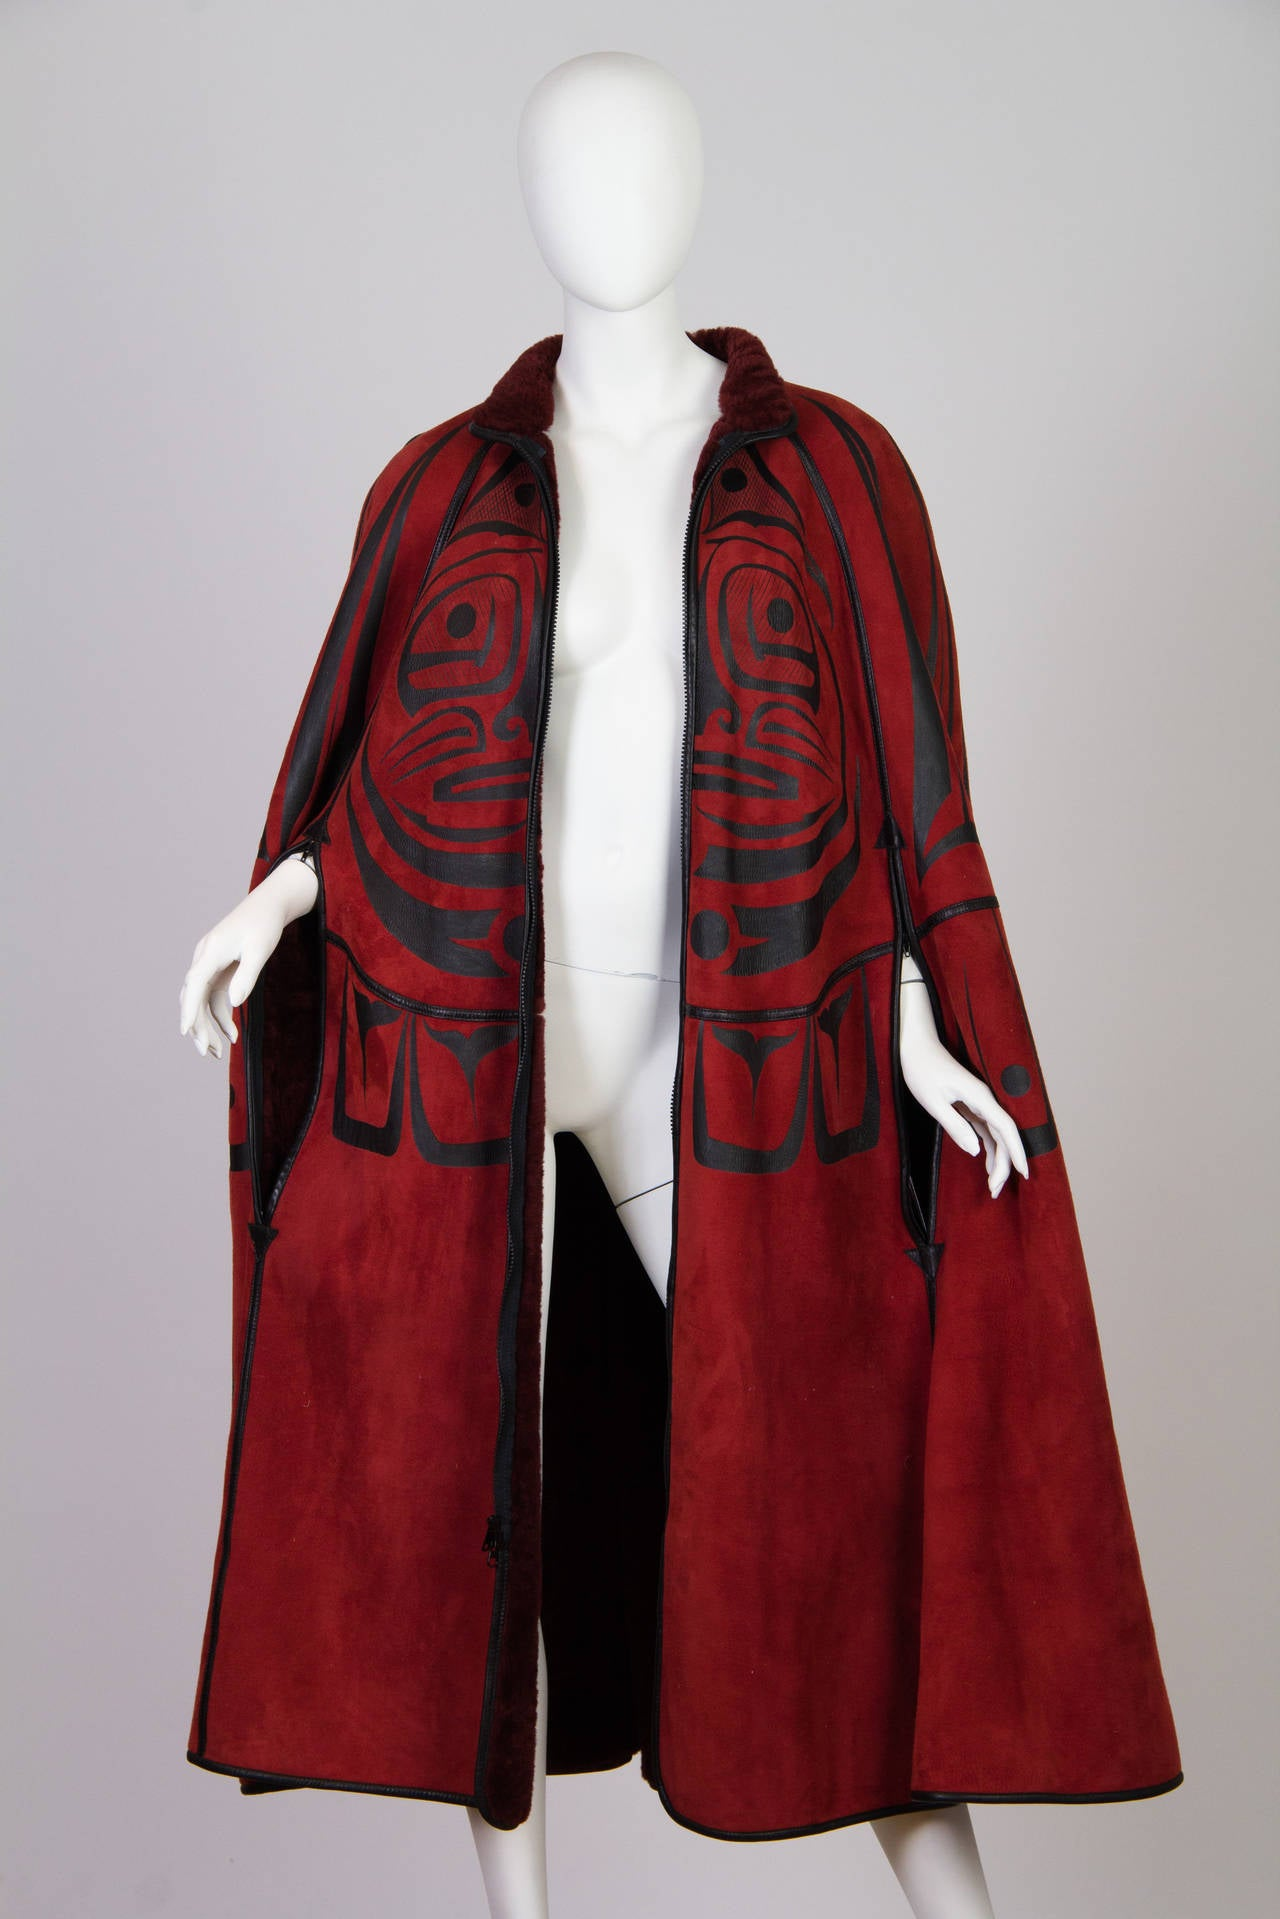 Phenomenal and epic design to this very unique piece. The cape zippers up the center front and there are two slits at the sides for the hands. The suede side of the cape as well as the fur is in pretty much mint unworn condition. There is no label